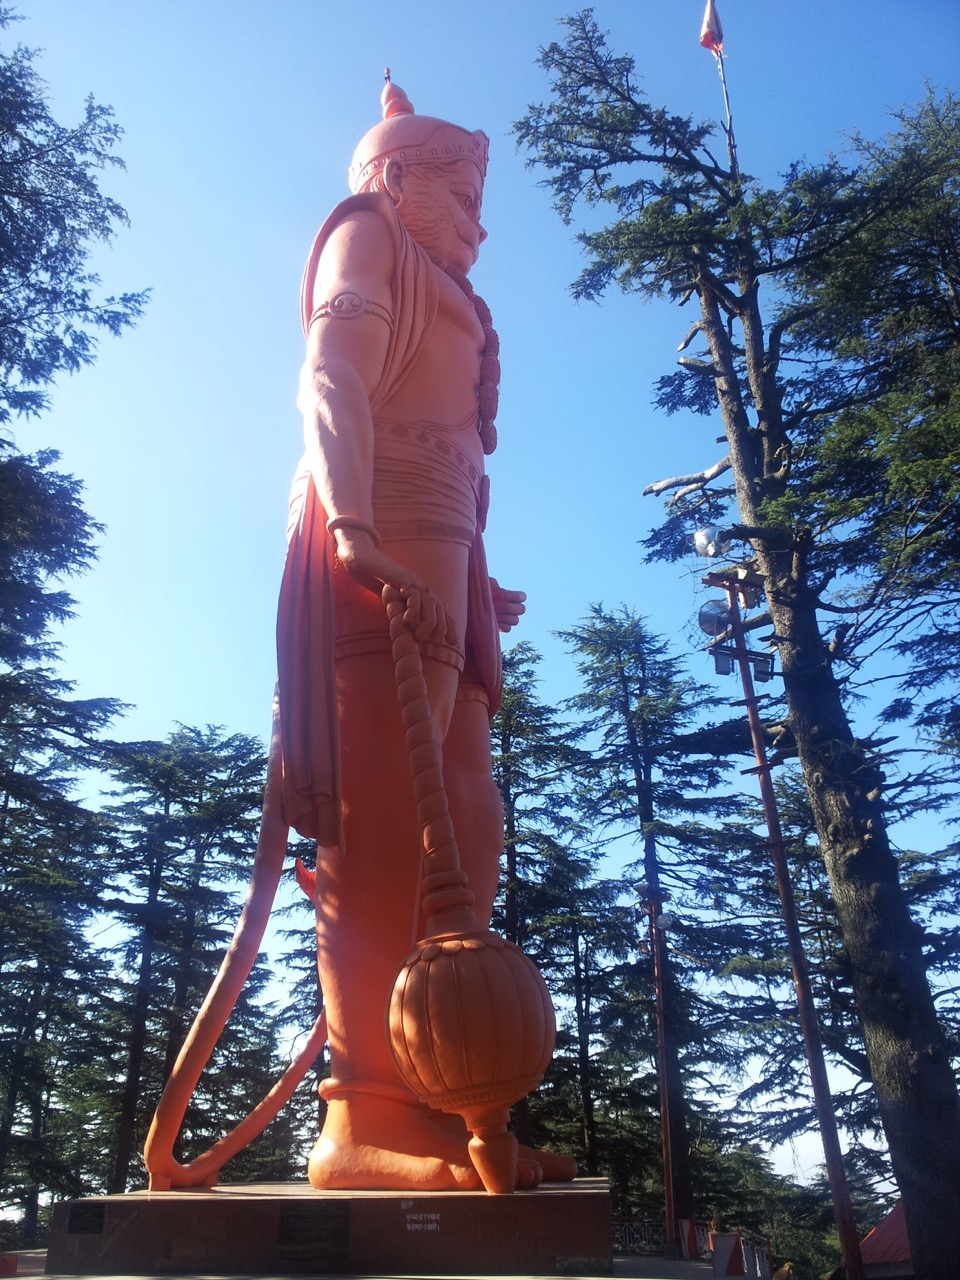 This is the huge Hanuman idol that is visible from afar. For comparisons, the base would be at my shoulder height.